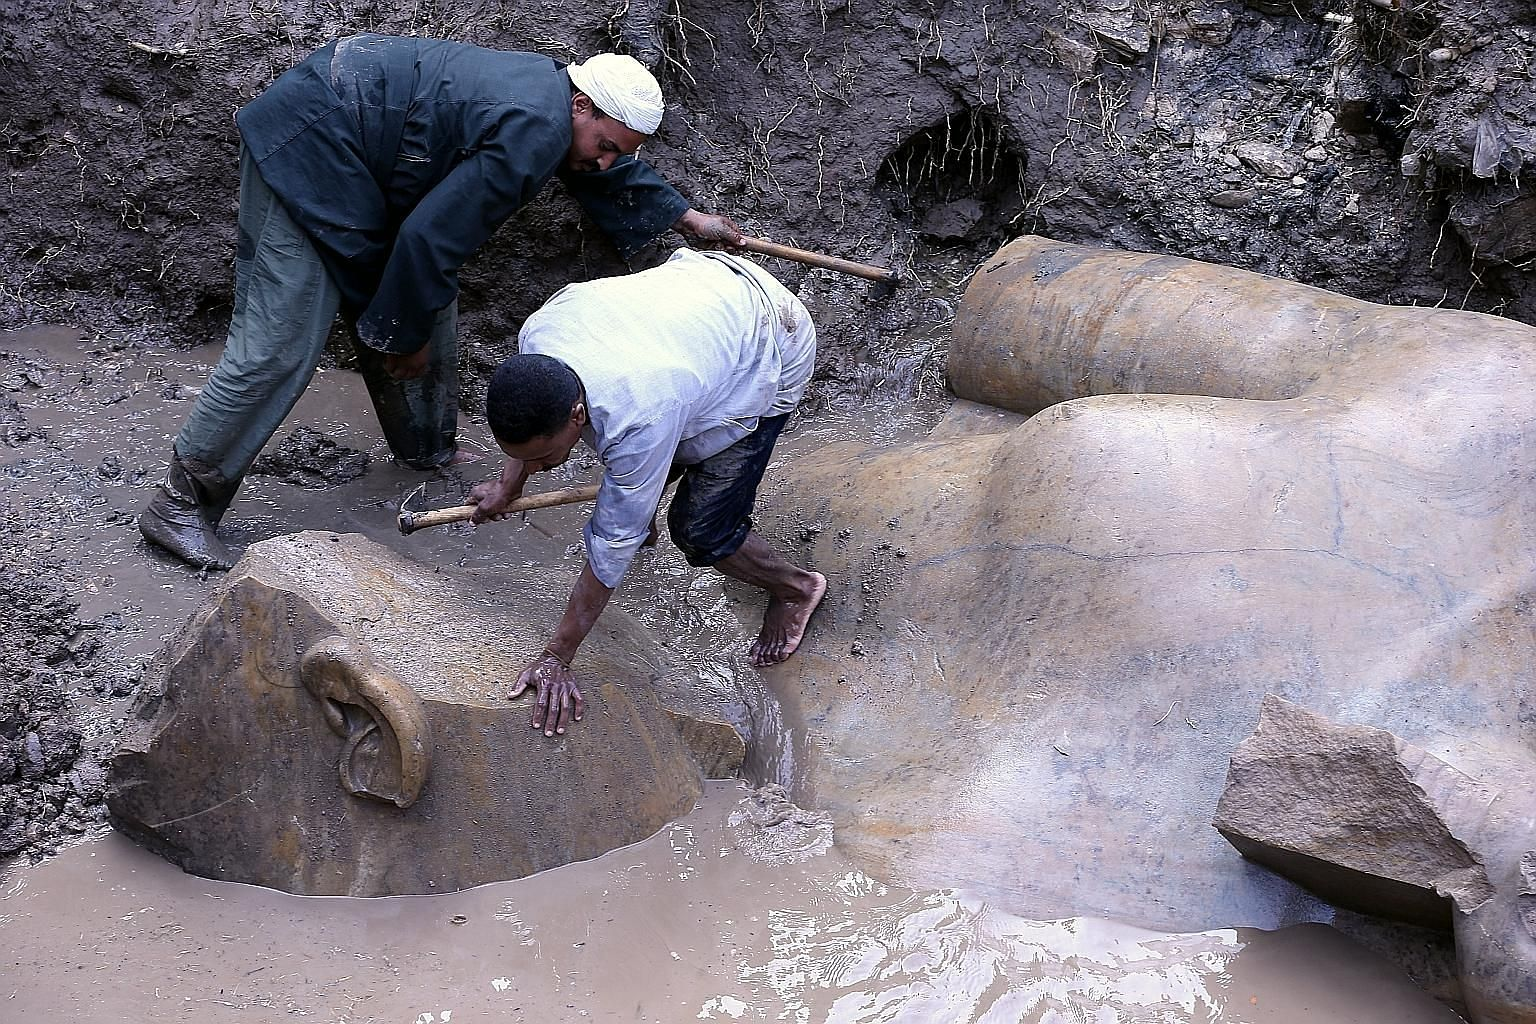 Workers preparing to lift parts of a statue for restoration after it was unearthed at Souq al-Khamis district in Cairo, Egypt, last Thursday. According to the Ministry of Antiquities, a German-Egyptian archaeological mission found two 19th dynasty ro